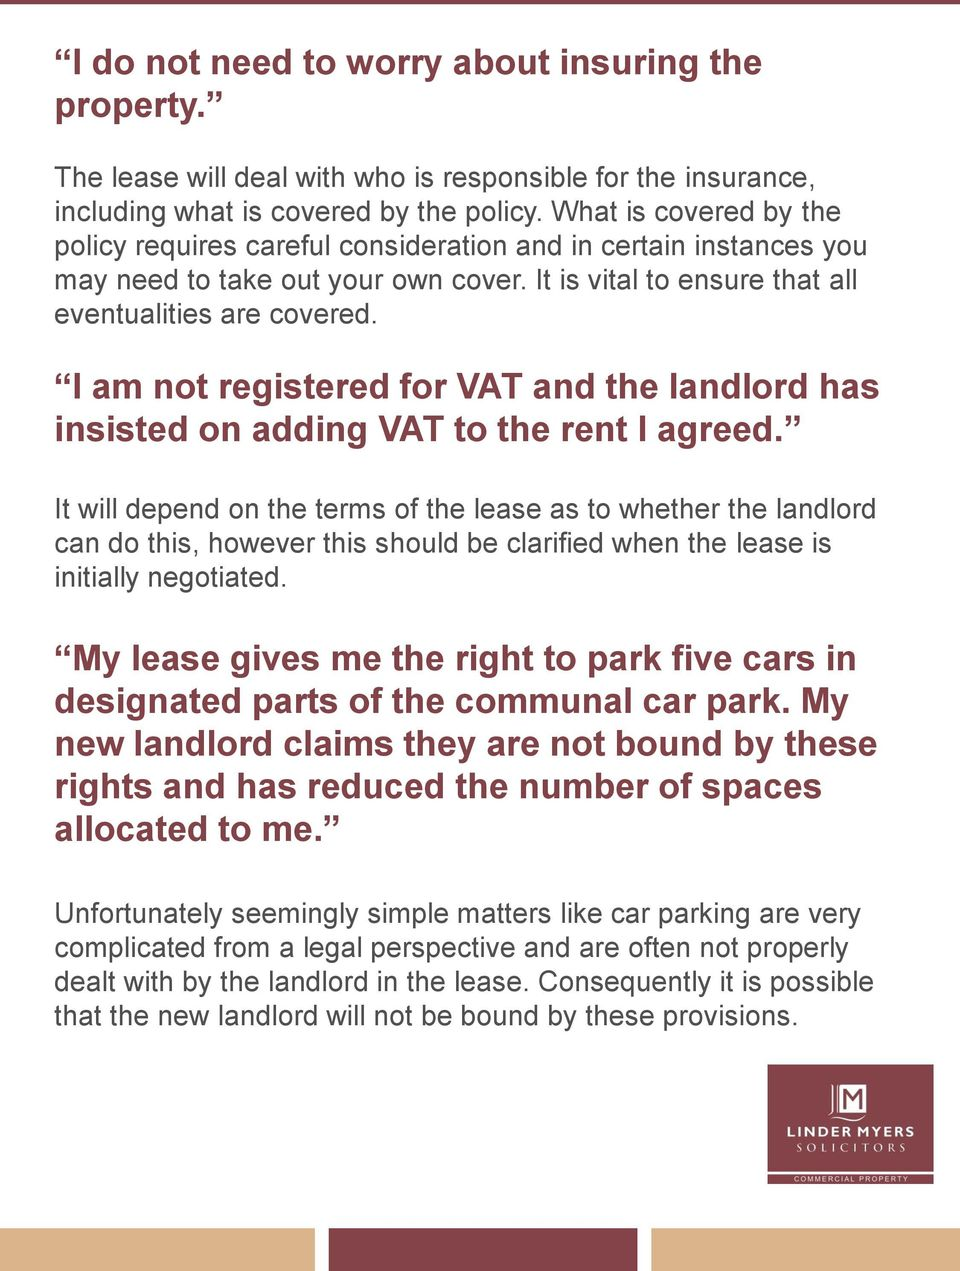 I am not registered for VAT and the landlord has insisted on adding VAT to the rent I agreed.